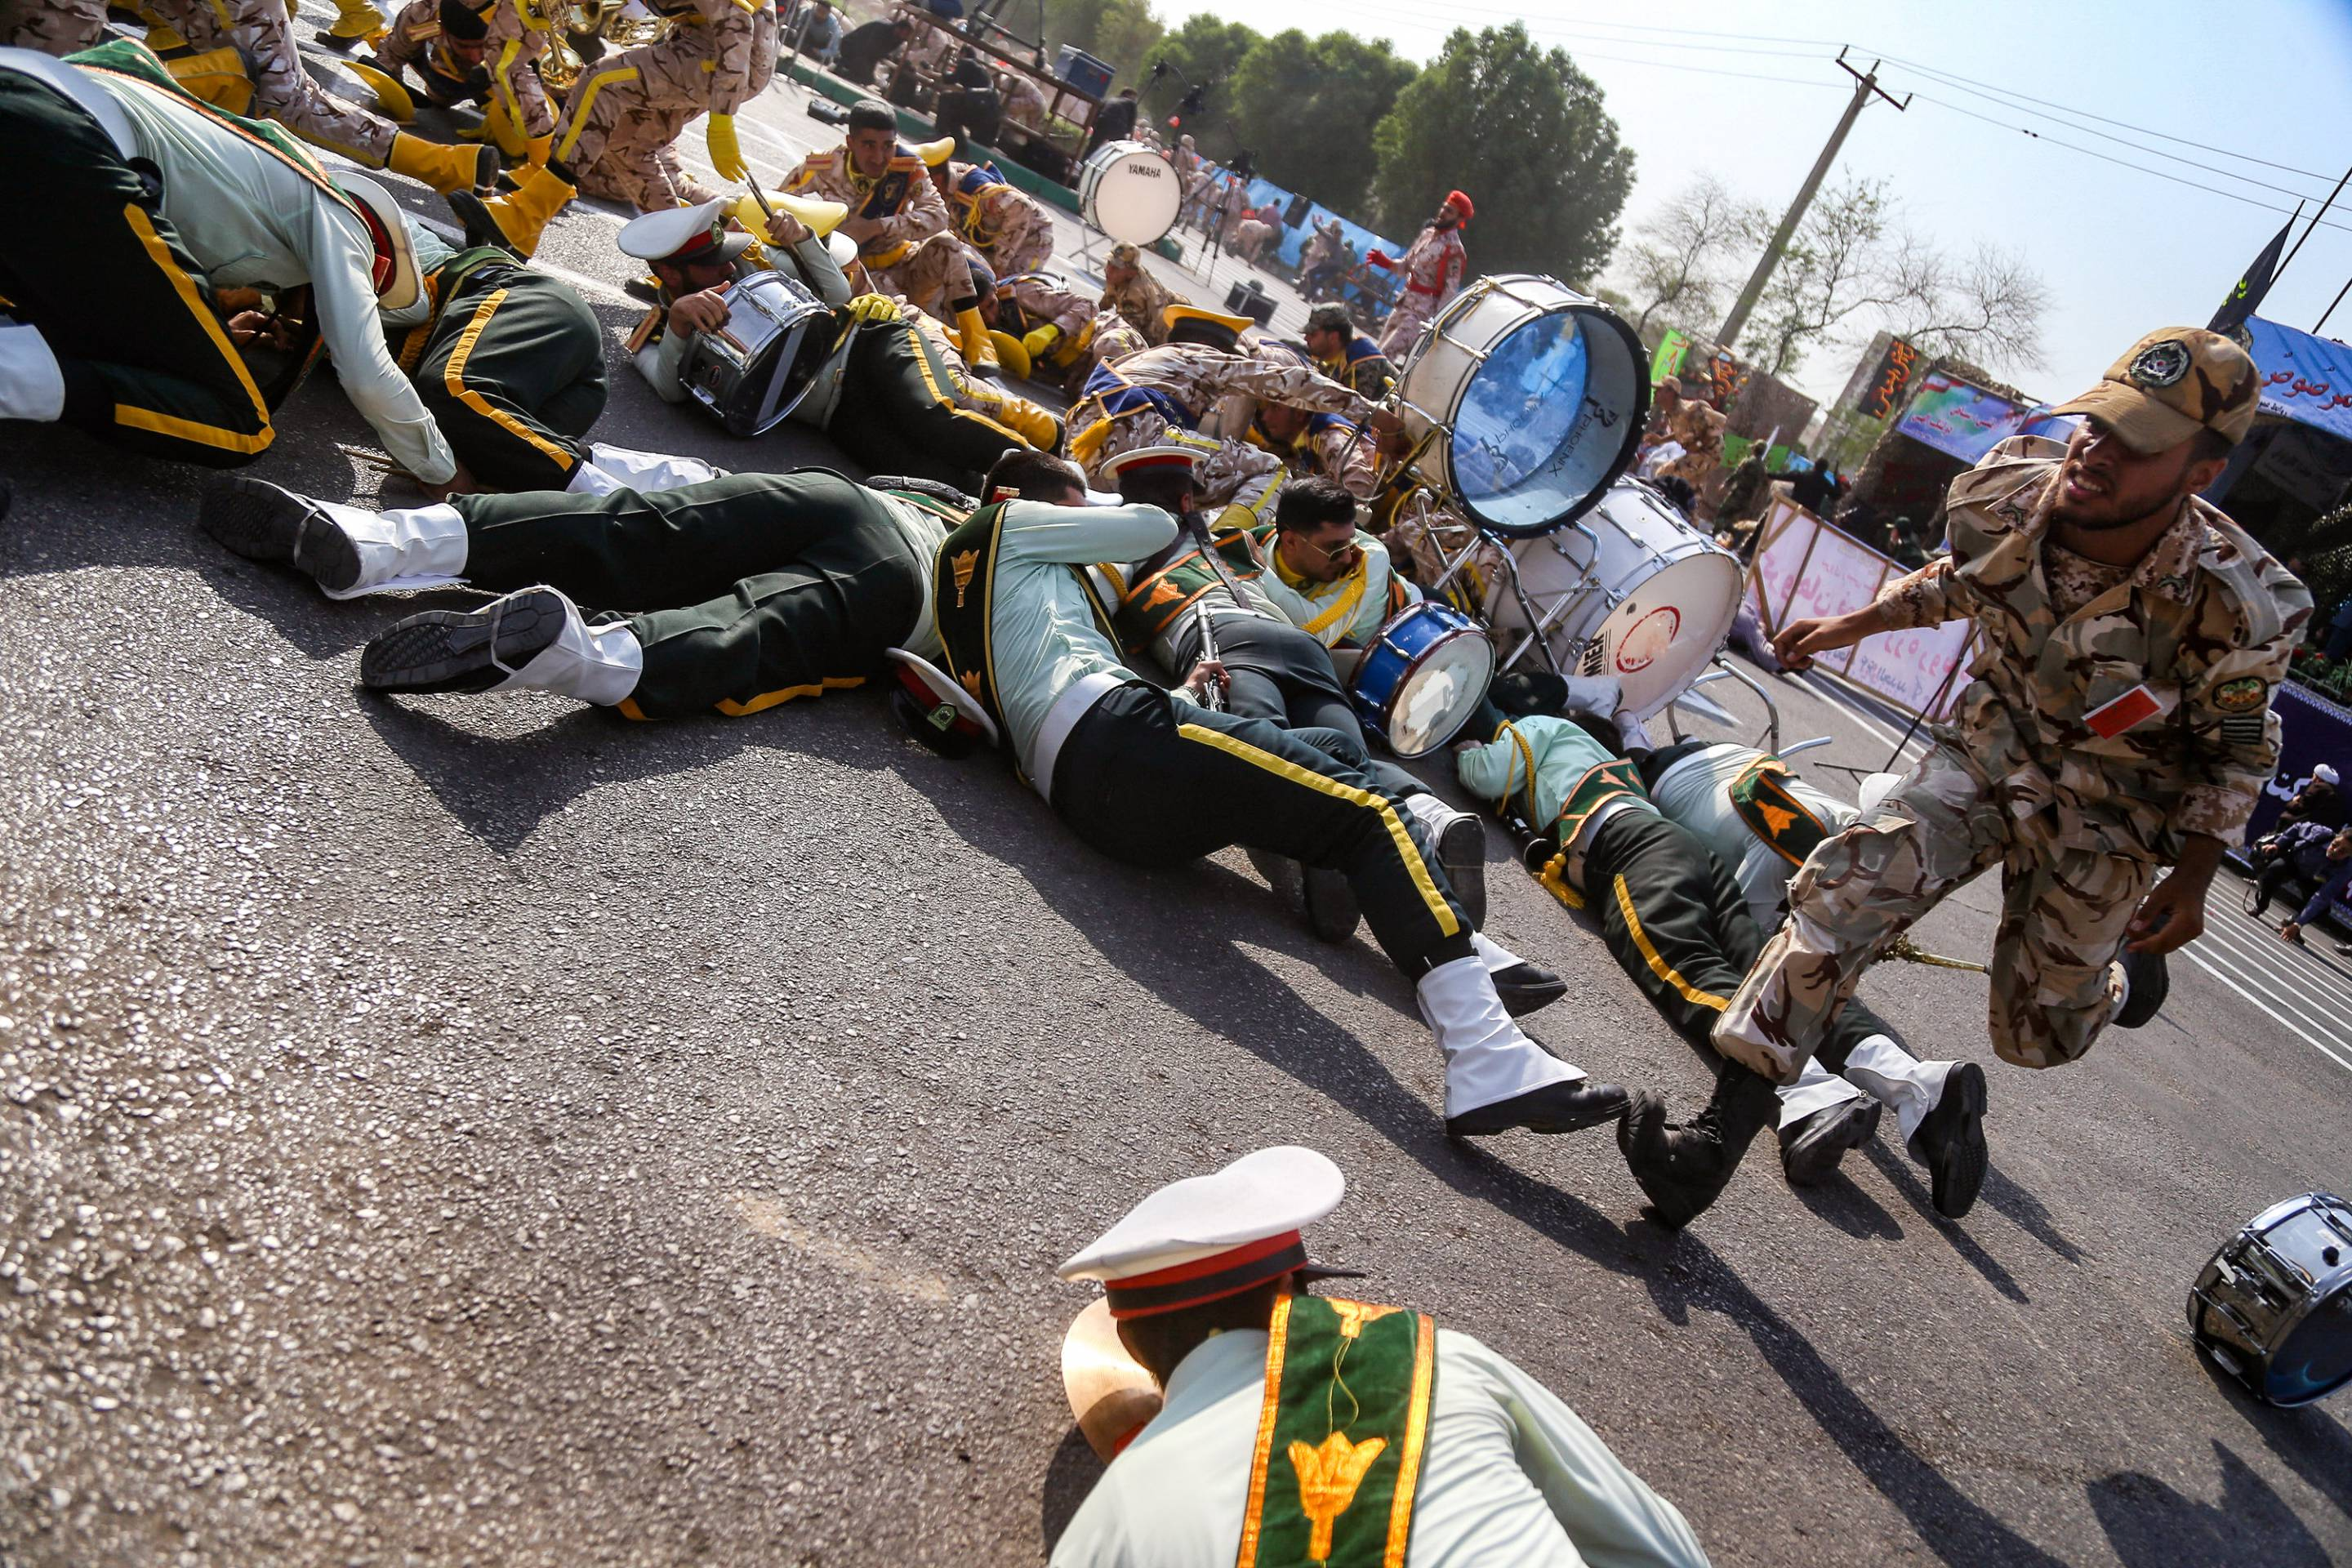 Soldier running past injured comrades lying on the ground at the scene of an attack on a military parade in the Iranian city of Ahvaz on September 22.